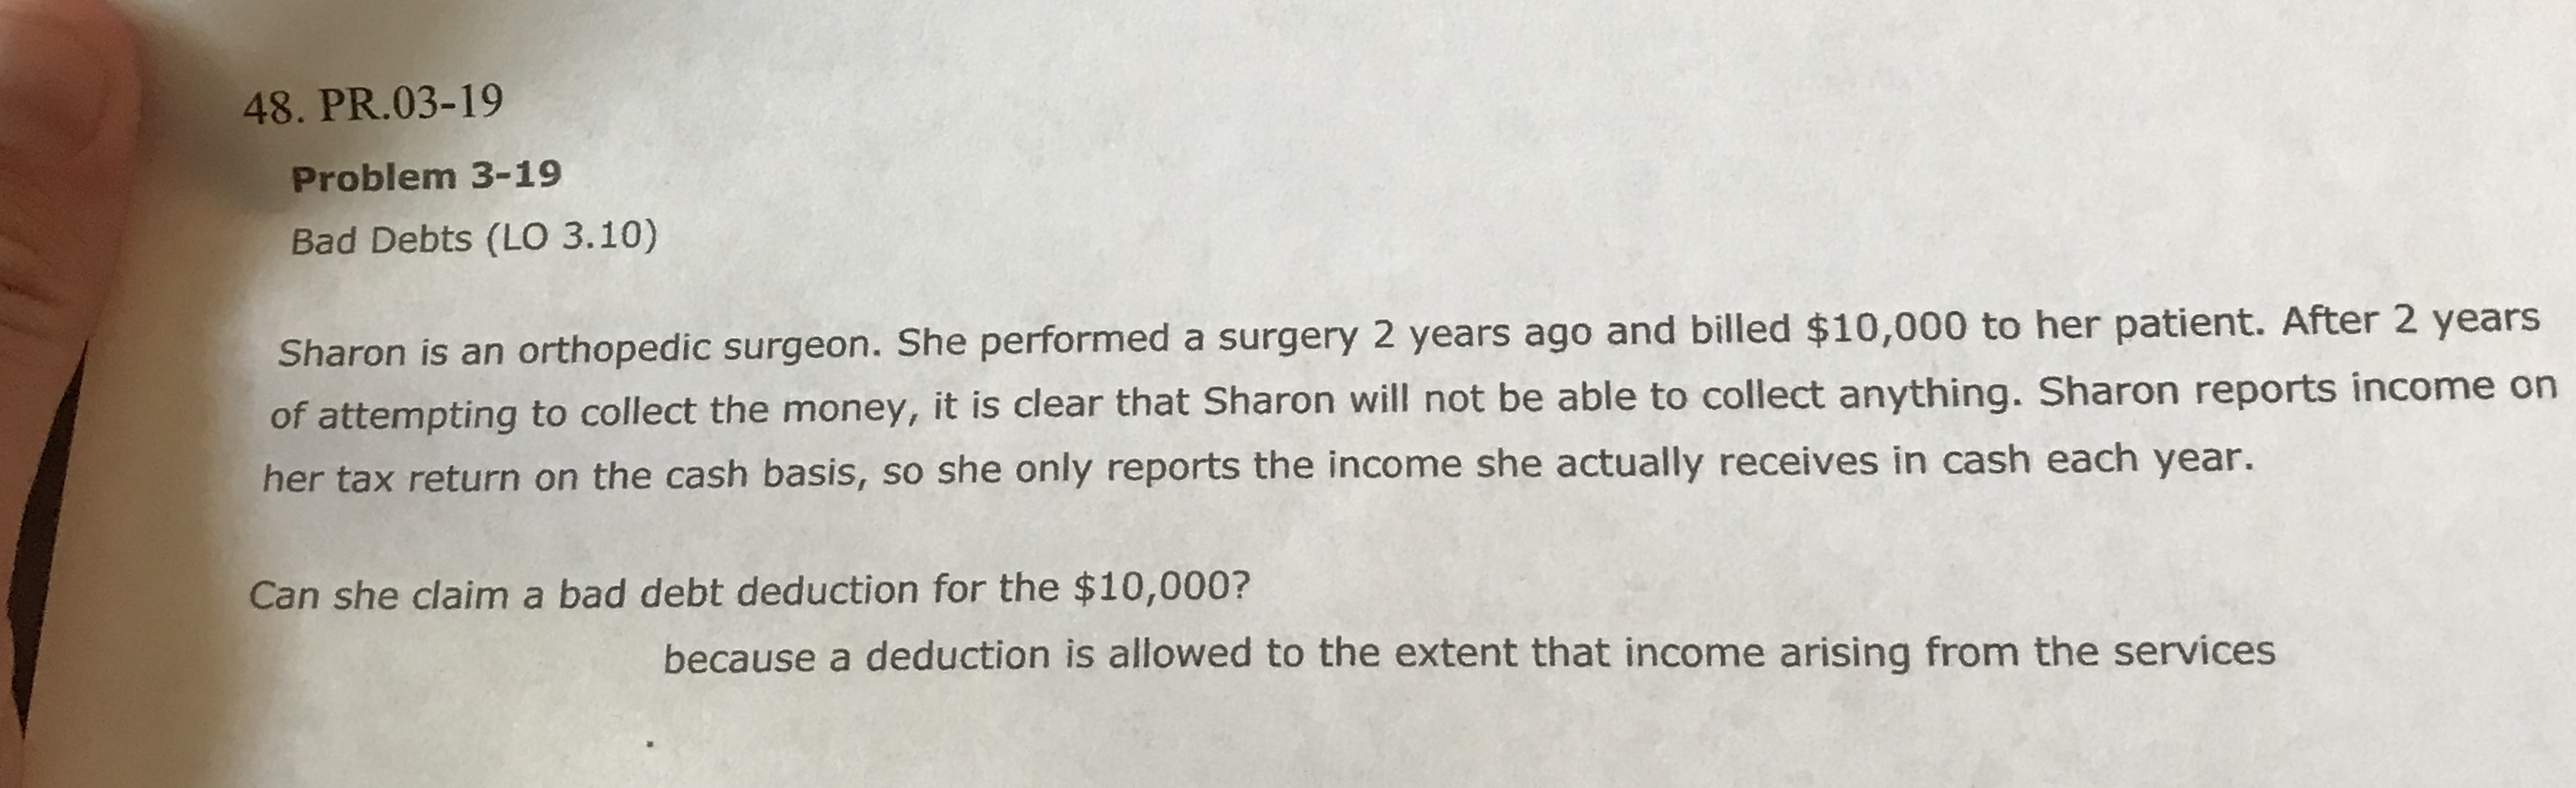 48. PR.03-19 Problem 3-19 Bad Debts (LO 3.10) Sharon is an orthopedic surgeon. She performed a surgery 2 years ago and billed $10,000 to her patient. After 2 years of attempting to collect the money, it is clear that Sharon will not be able to collect anything. Sharon reports income on her tax return on the cash basis, so she only reports the income she actually receives in cash each year. Can she claim a bad debt deduction for the $10,000? because a deduction is allowed to the extent that income arising from the services